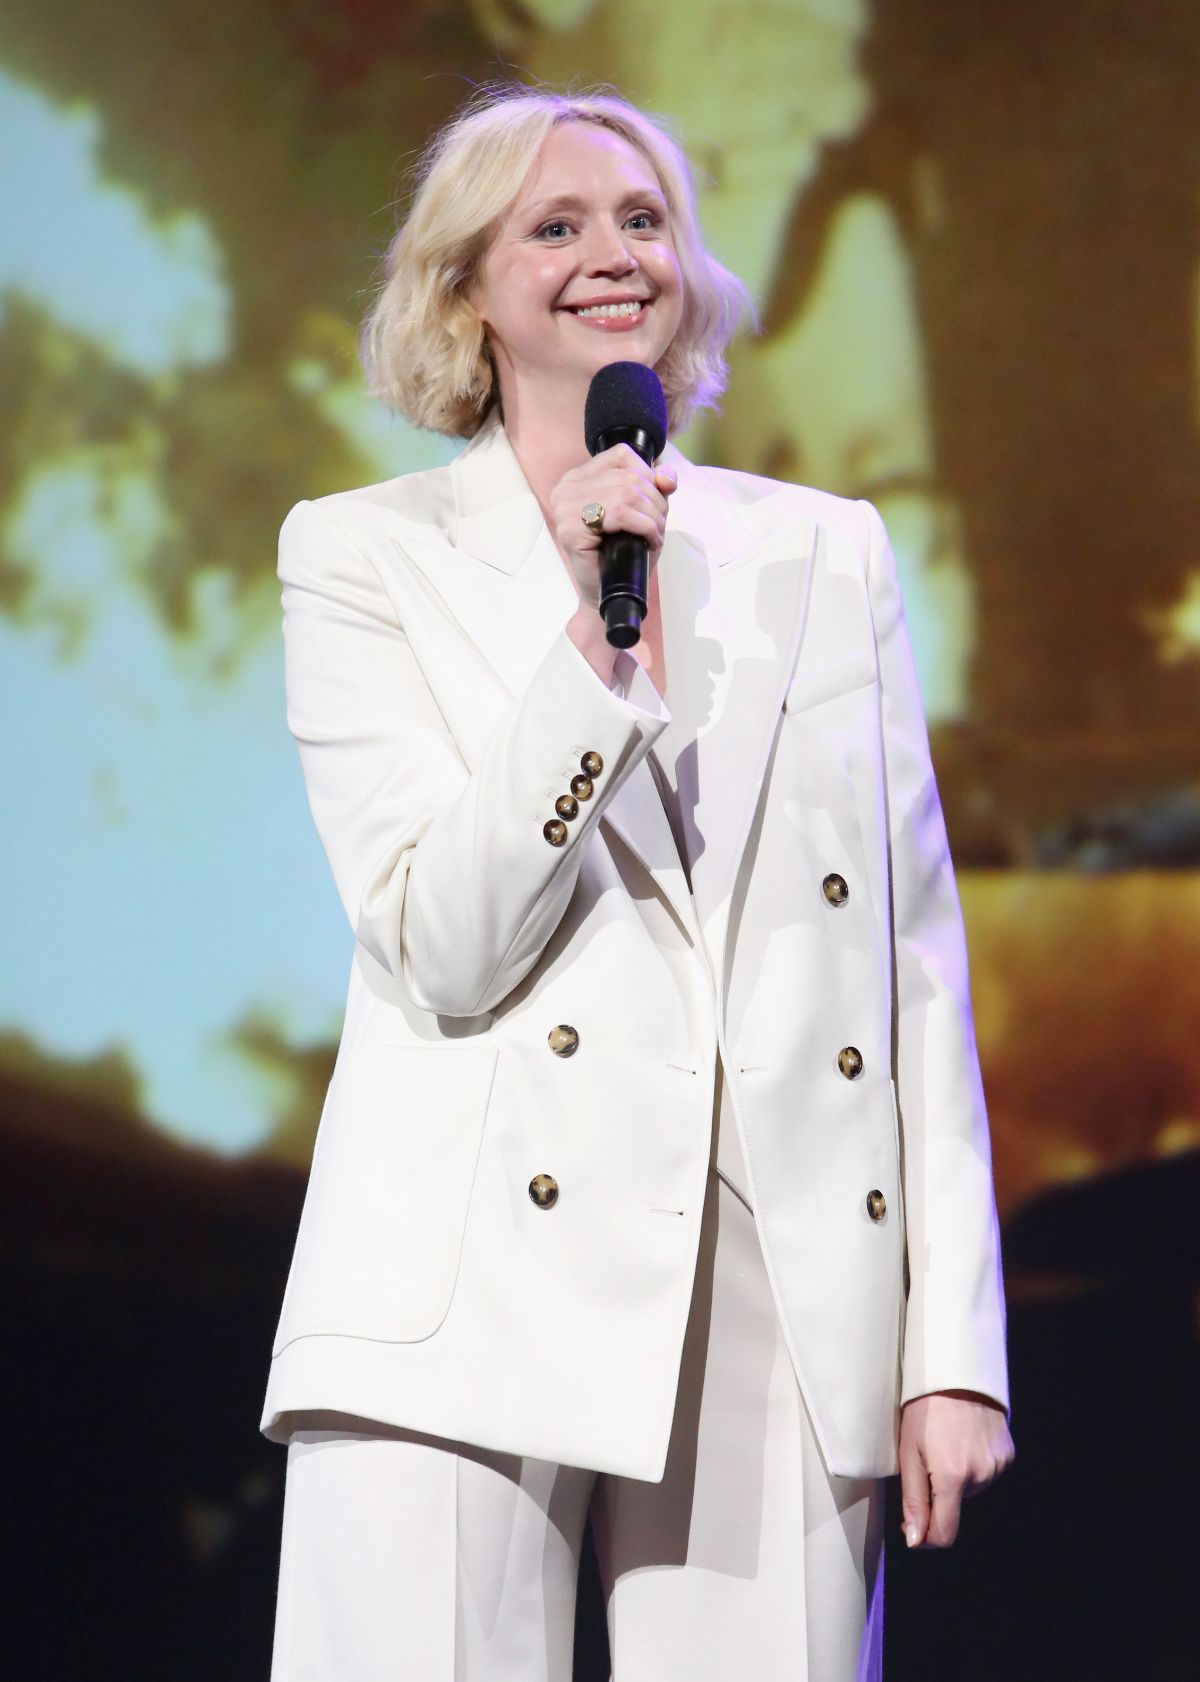 GWENDOLINE CHRISTIE at Disney's D23 Expo 2017 in Anaheim 07/15/2017   gwendoline-christie-at-disney-s-d23-expo-2017-in-anaheim-07-15-2017_4